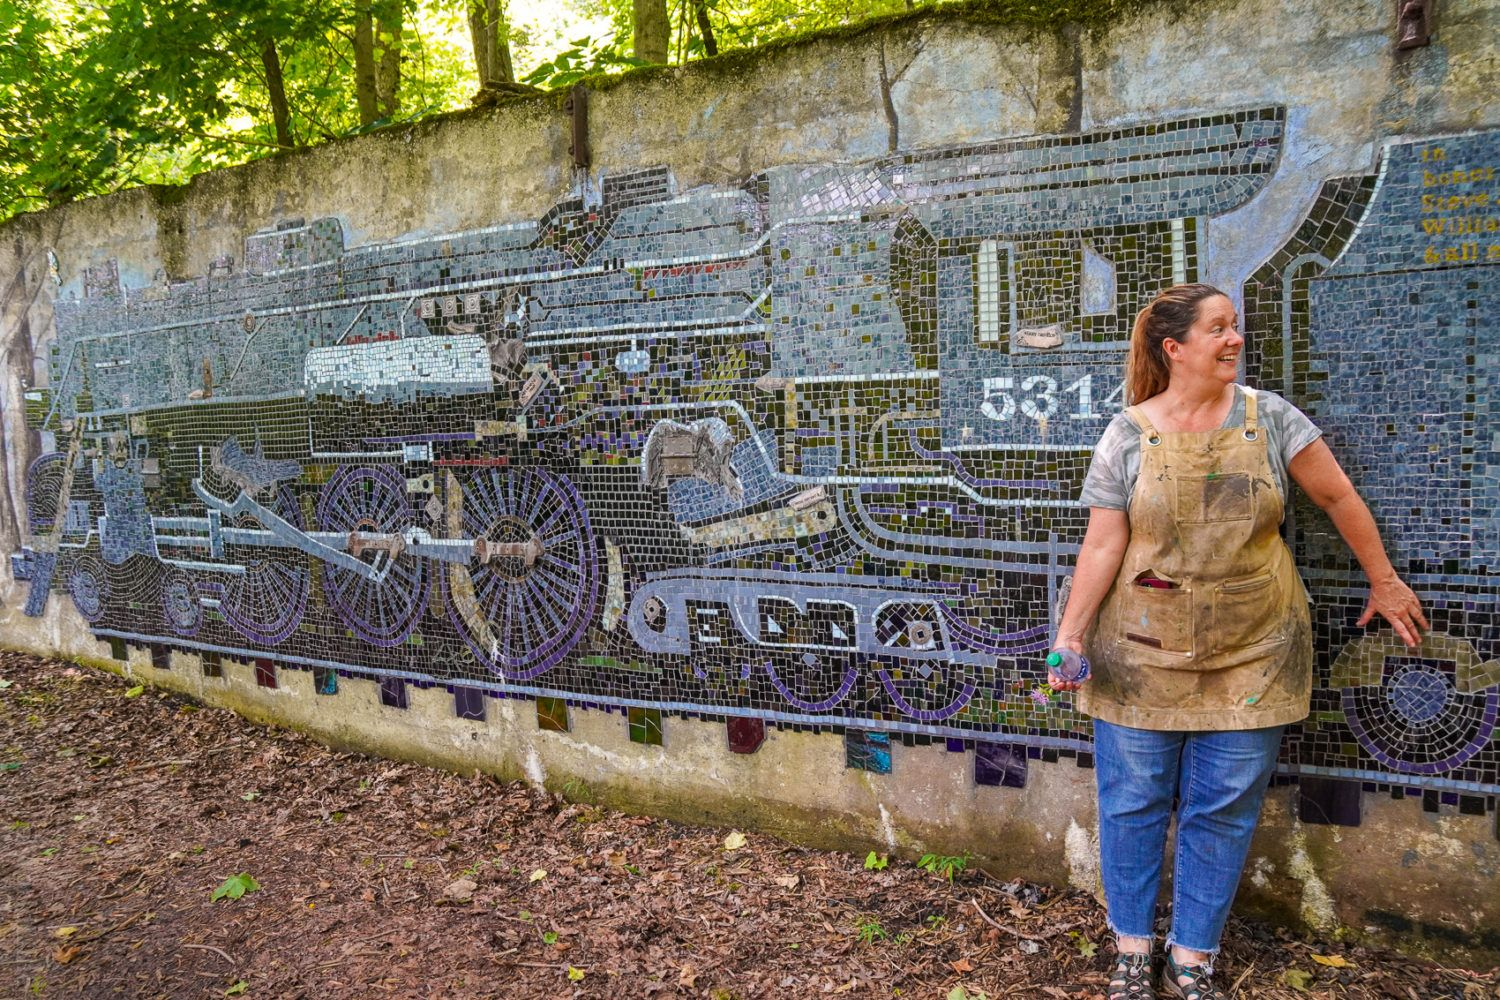 The largest mosaic train in the world?